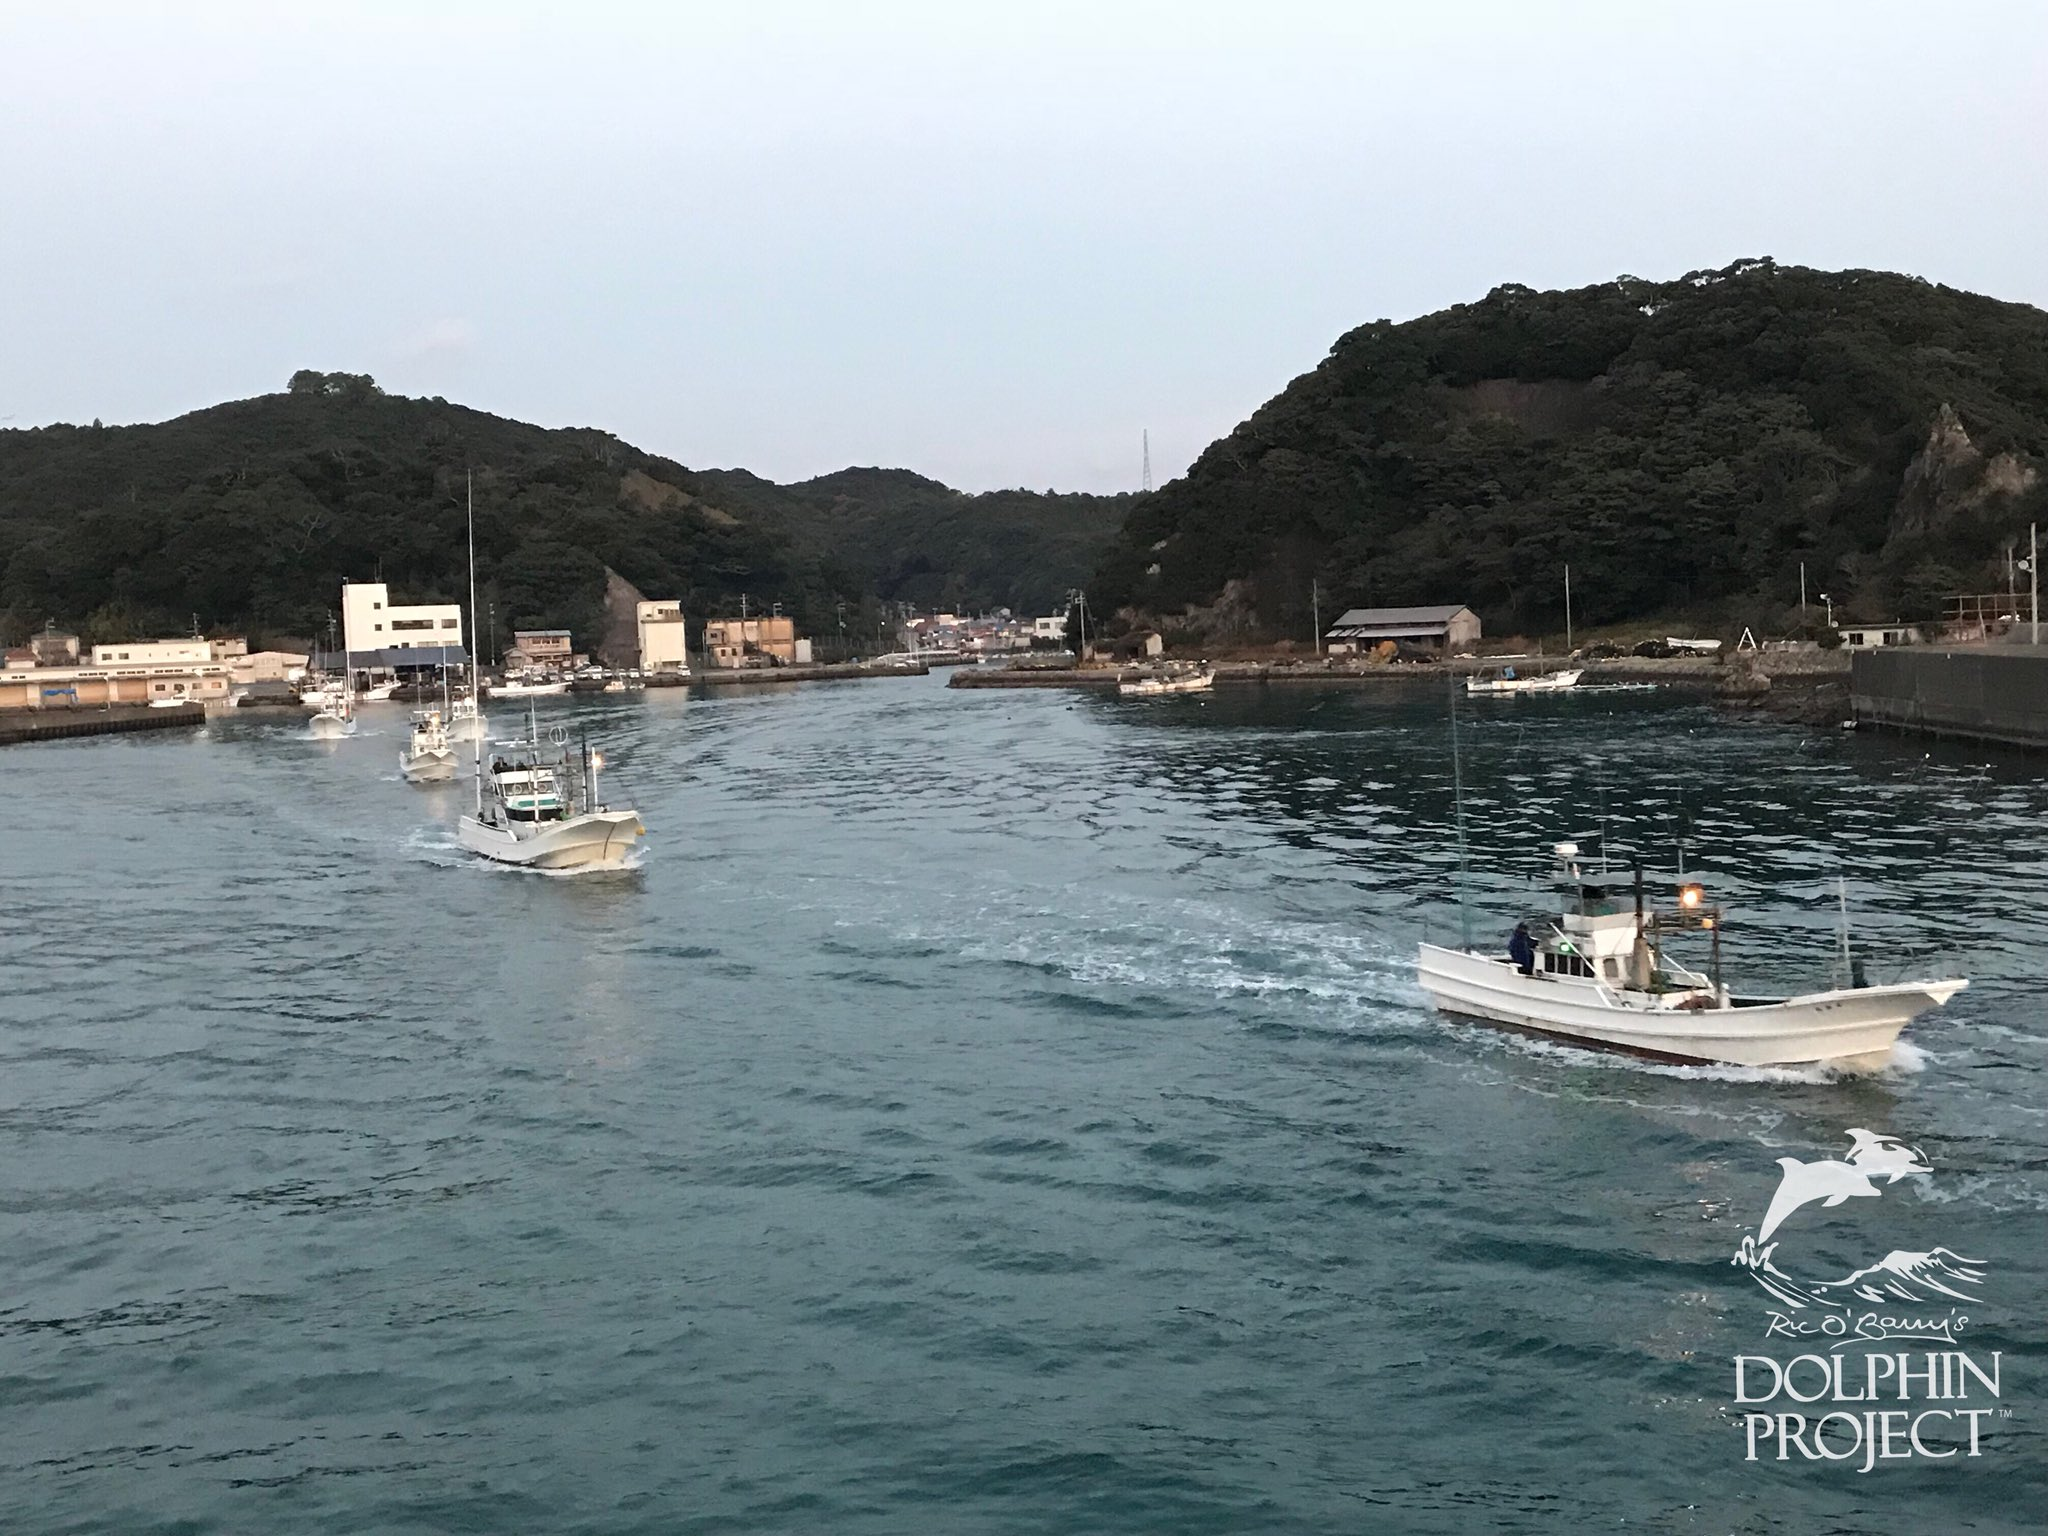 Taiji: All 12 banger boats are headed out to sea this morning to hunt for dolphins. 11-25-17 6:27am #dolphinproject https://t.co/cHZp3RJTaI